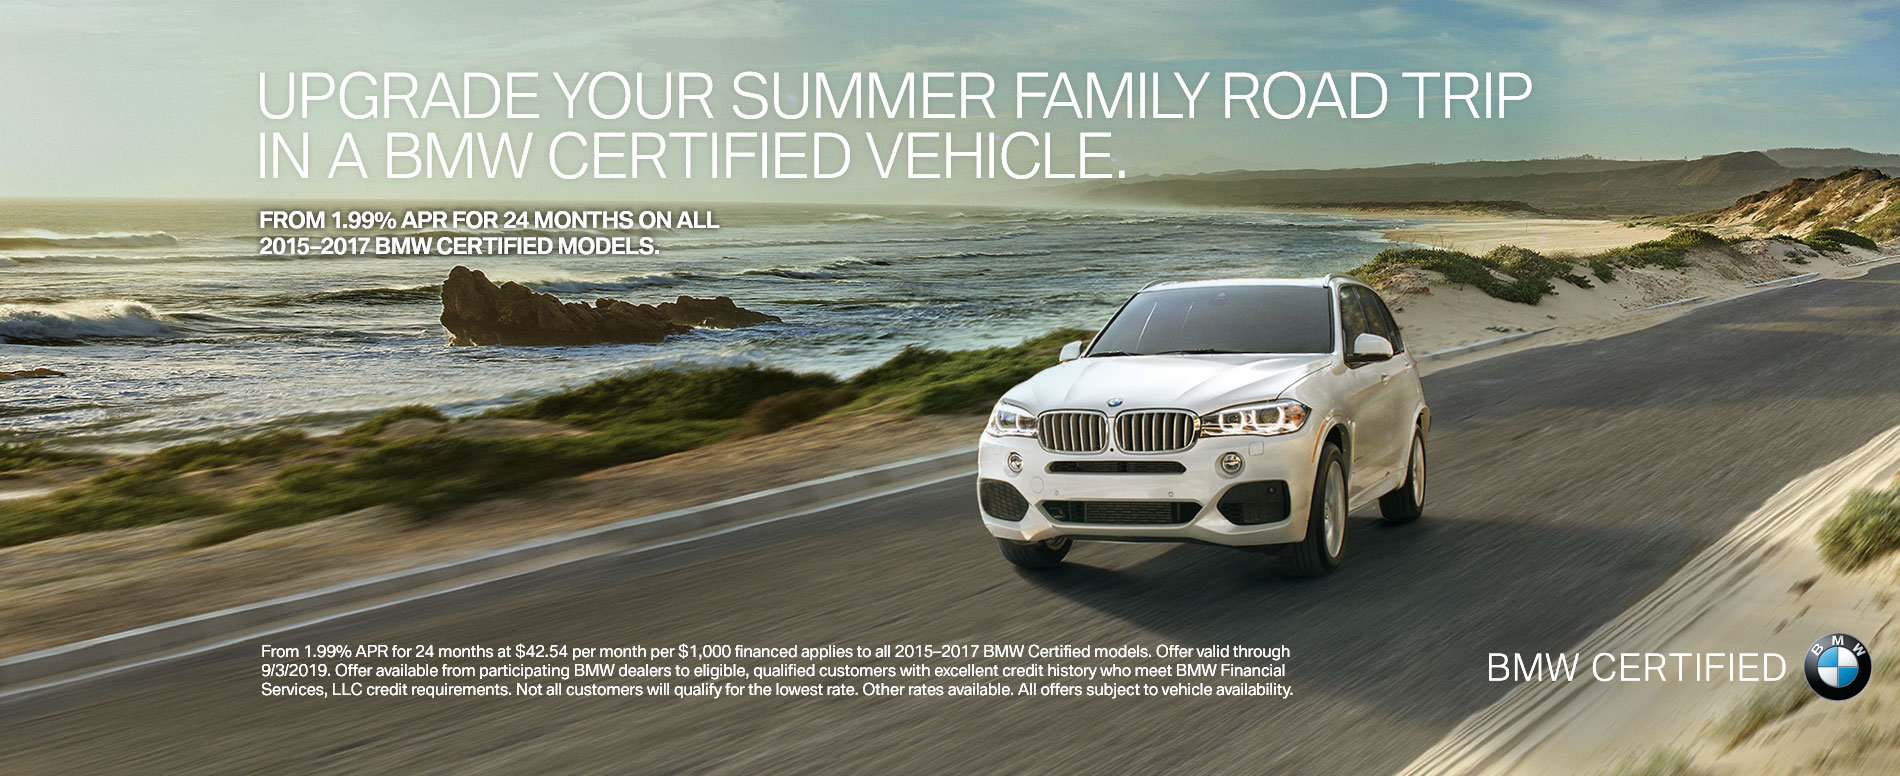 from 1 99% apr for 24 months on all 2015-2017 bmw certified mode